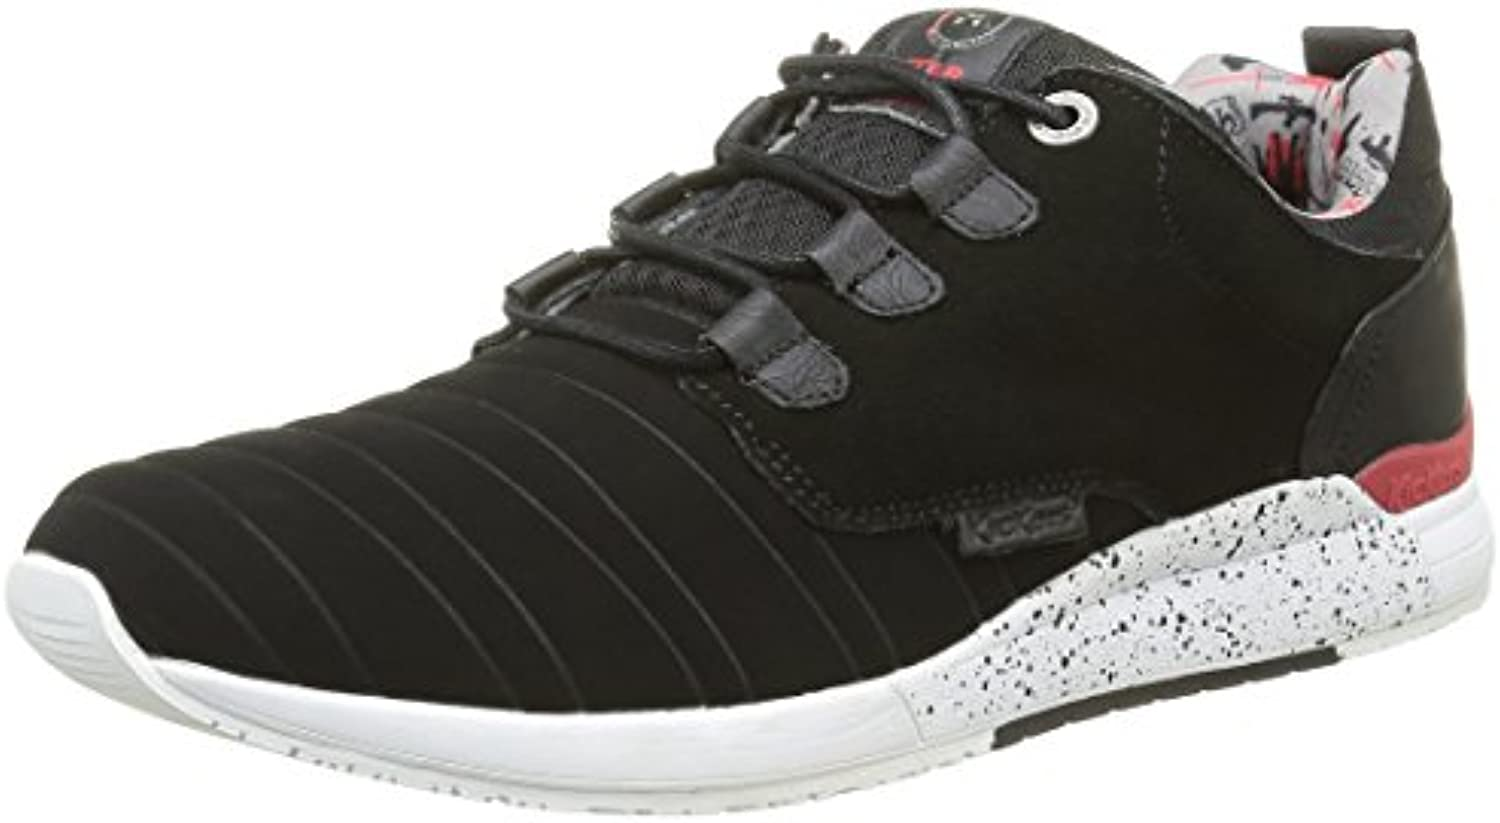 Kickers Herren Slayer Kylo M Low Top